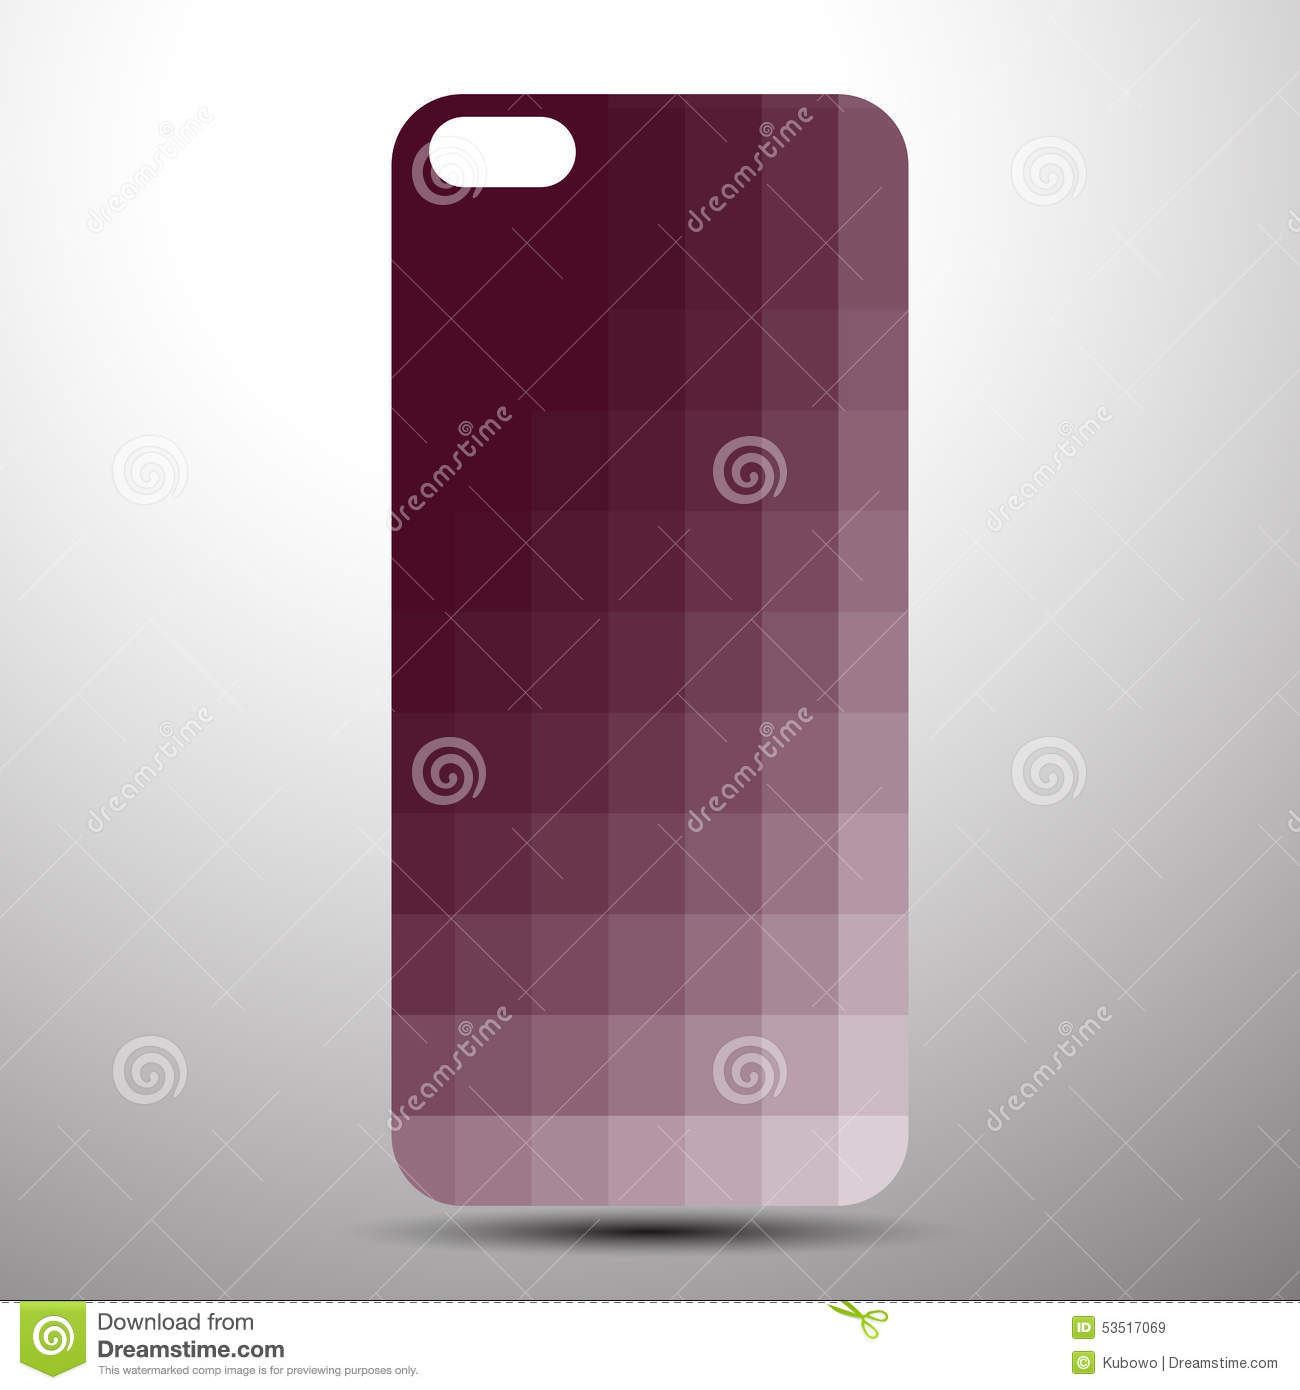 Smartphone Cover Back Wallpaper Stock Vector Illustration Of Decoration Endless 53517069